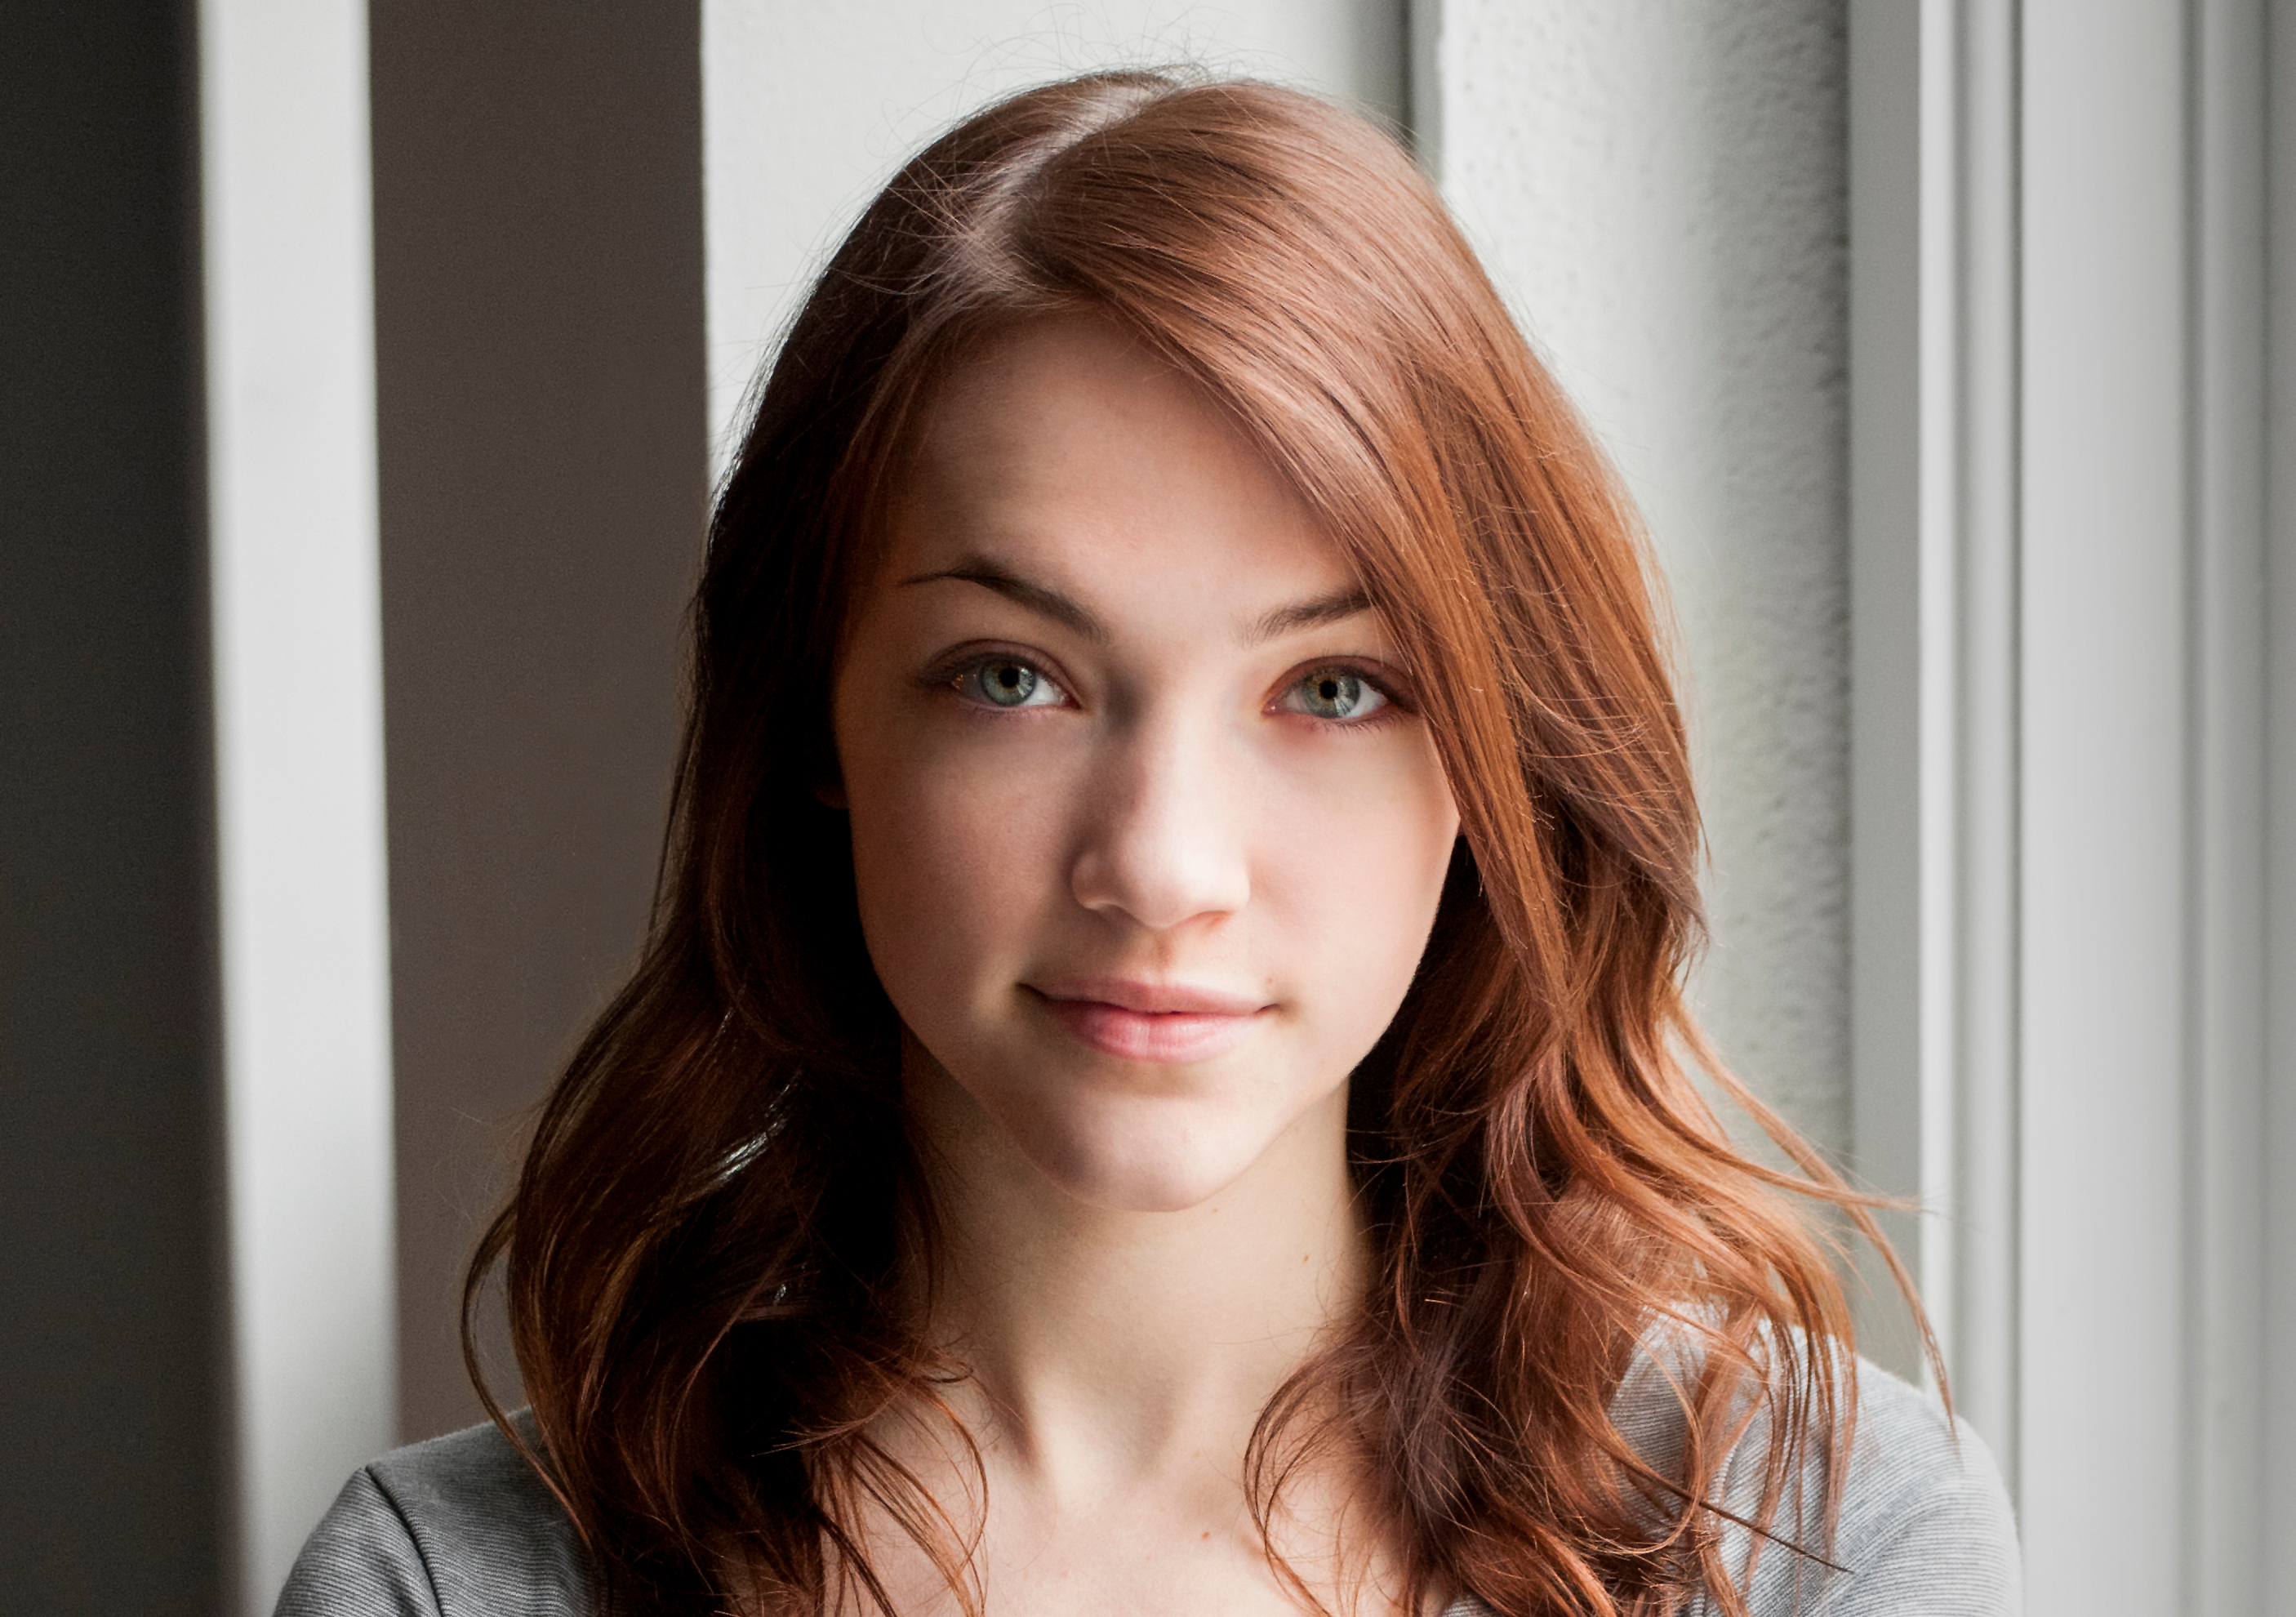 Celebrites Violett Beane naked (98 photo), Ass, Cleavage, Instagram, lingerie 2006